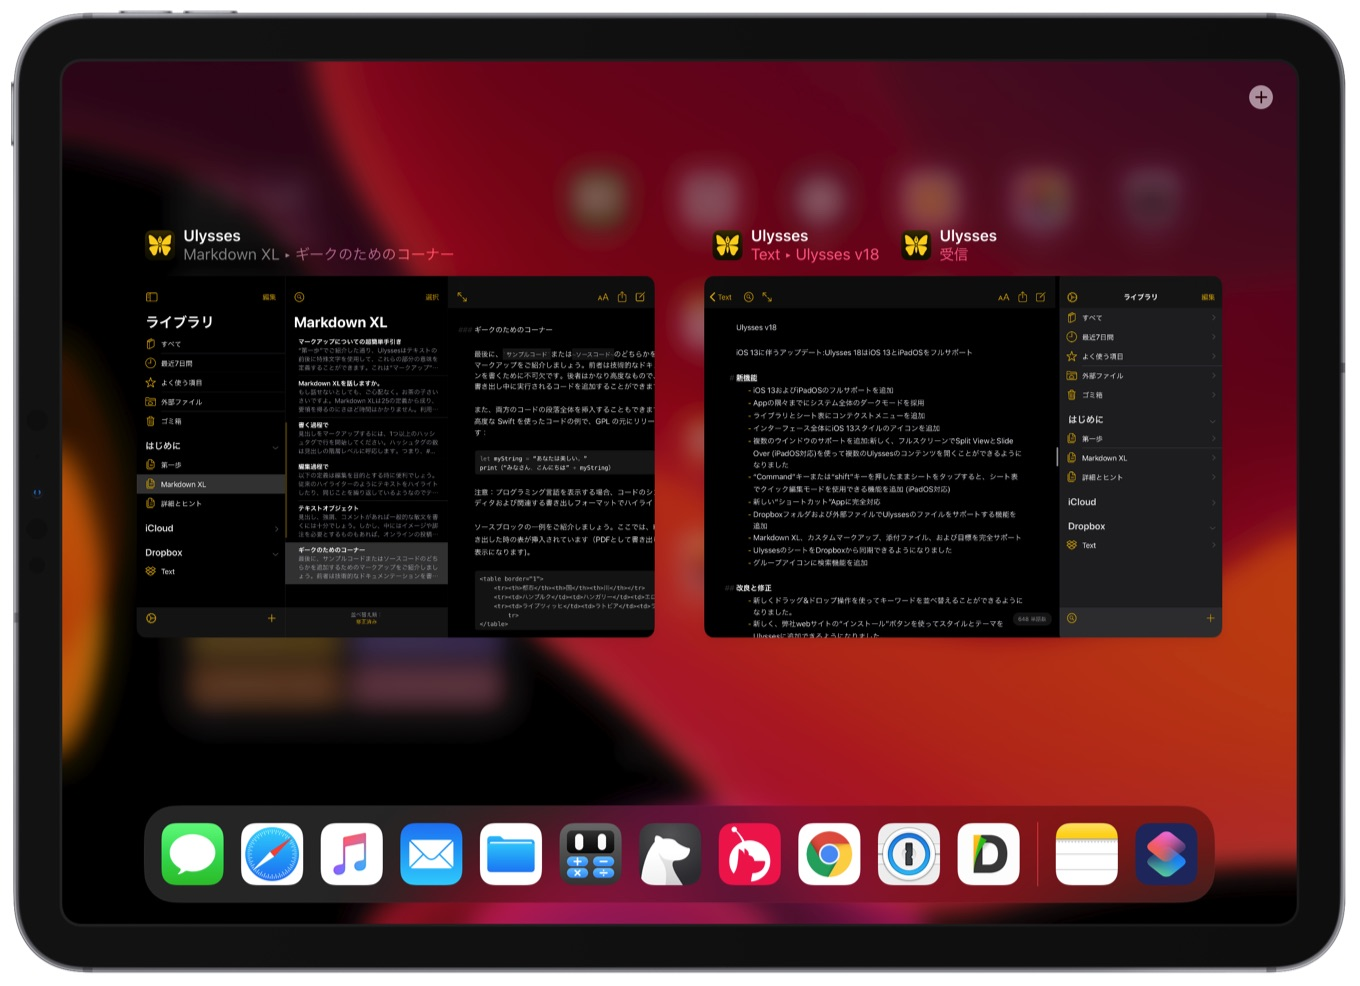 Ulysses v18 for iPadOS support multi tasking